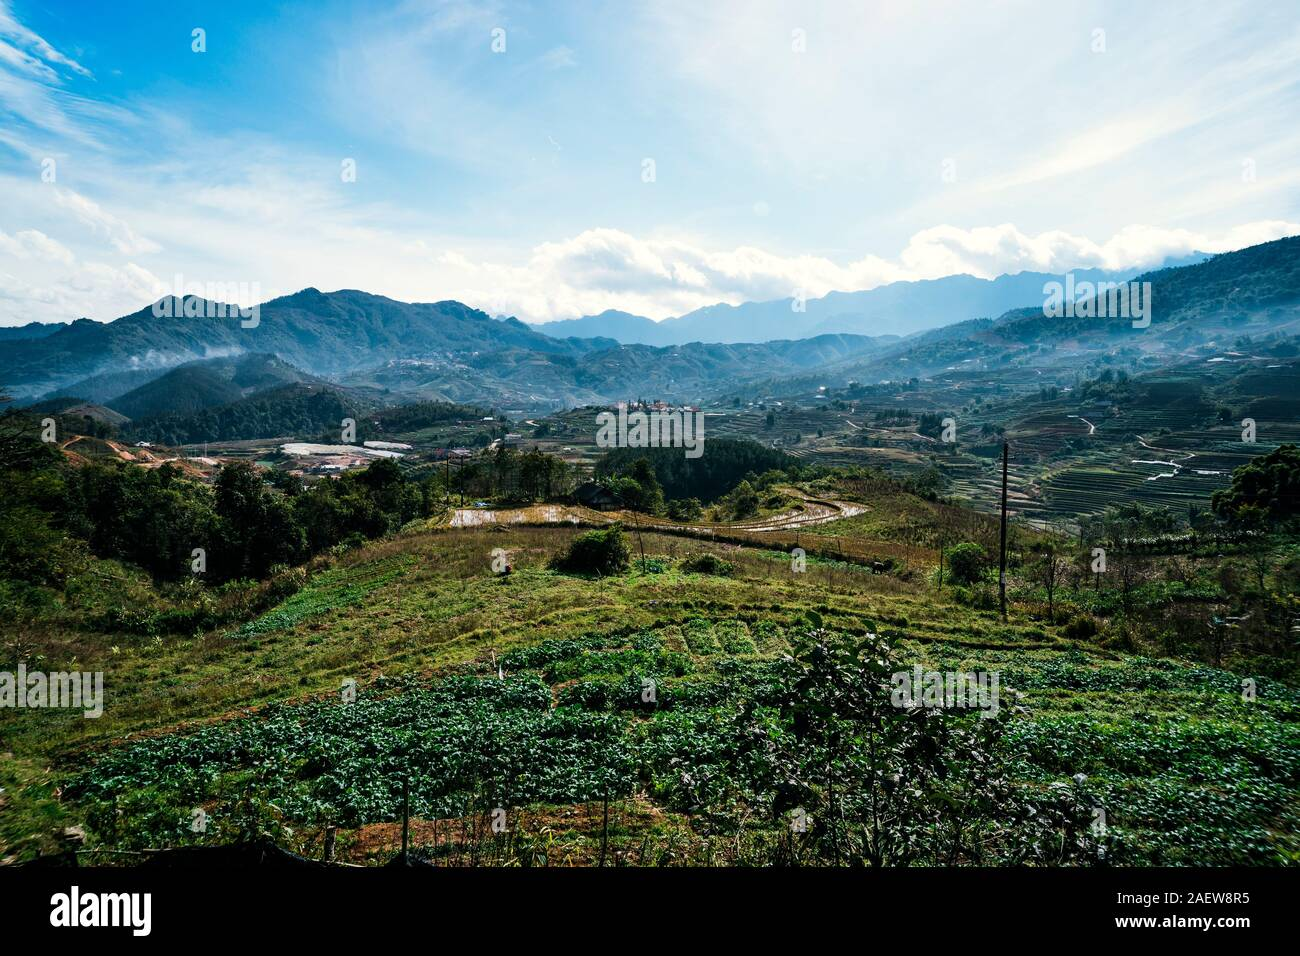 Black Hmong village and terrace rice fields in Winter on foggy and rainy day at Muong Hoa Valley in Sapa, vietnam. Stock Photo